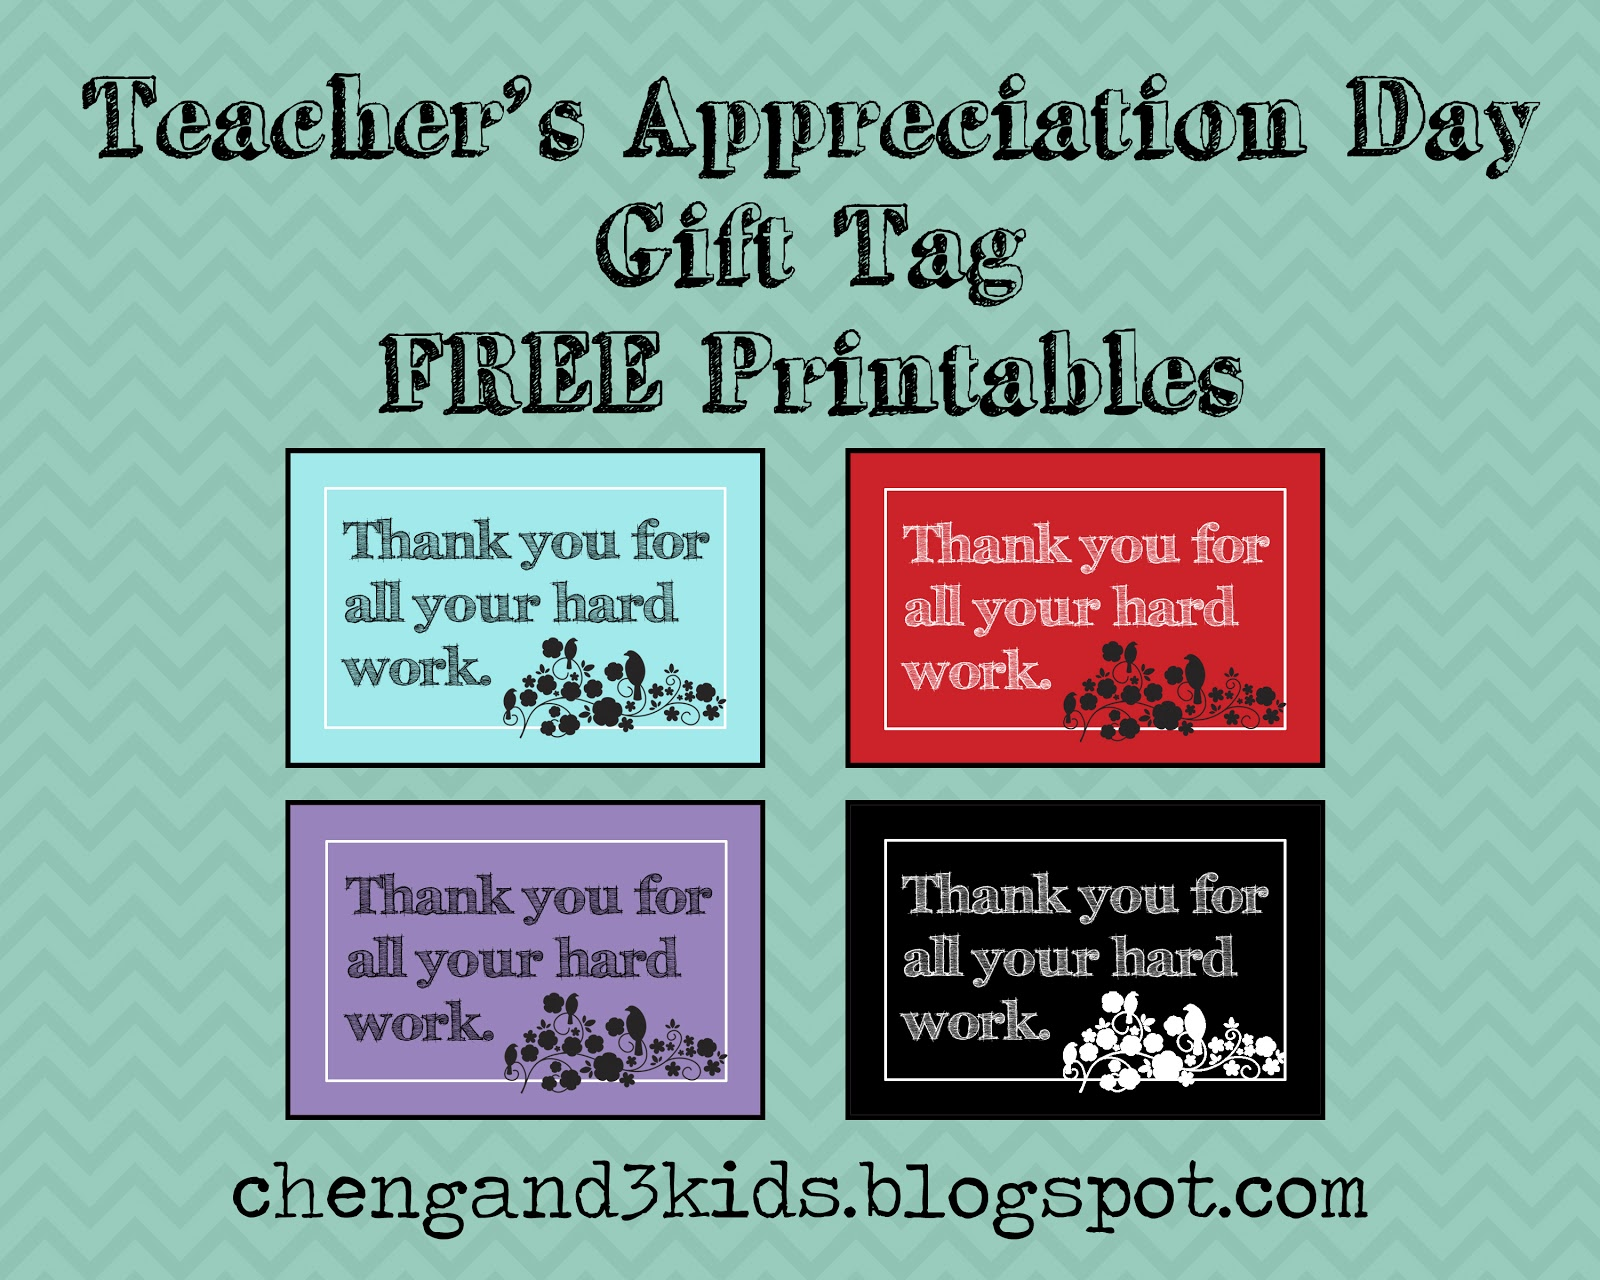 image regarding Free Printable Teacher Gift Tags named Cheng and 3 Children: Lecturers Appreciation Working day Reward Tag Cost-free